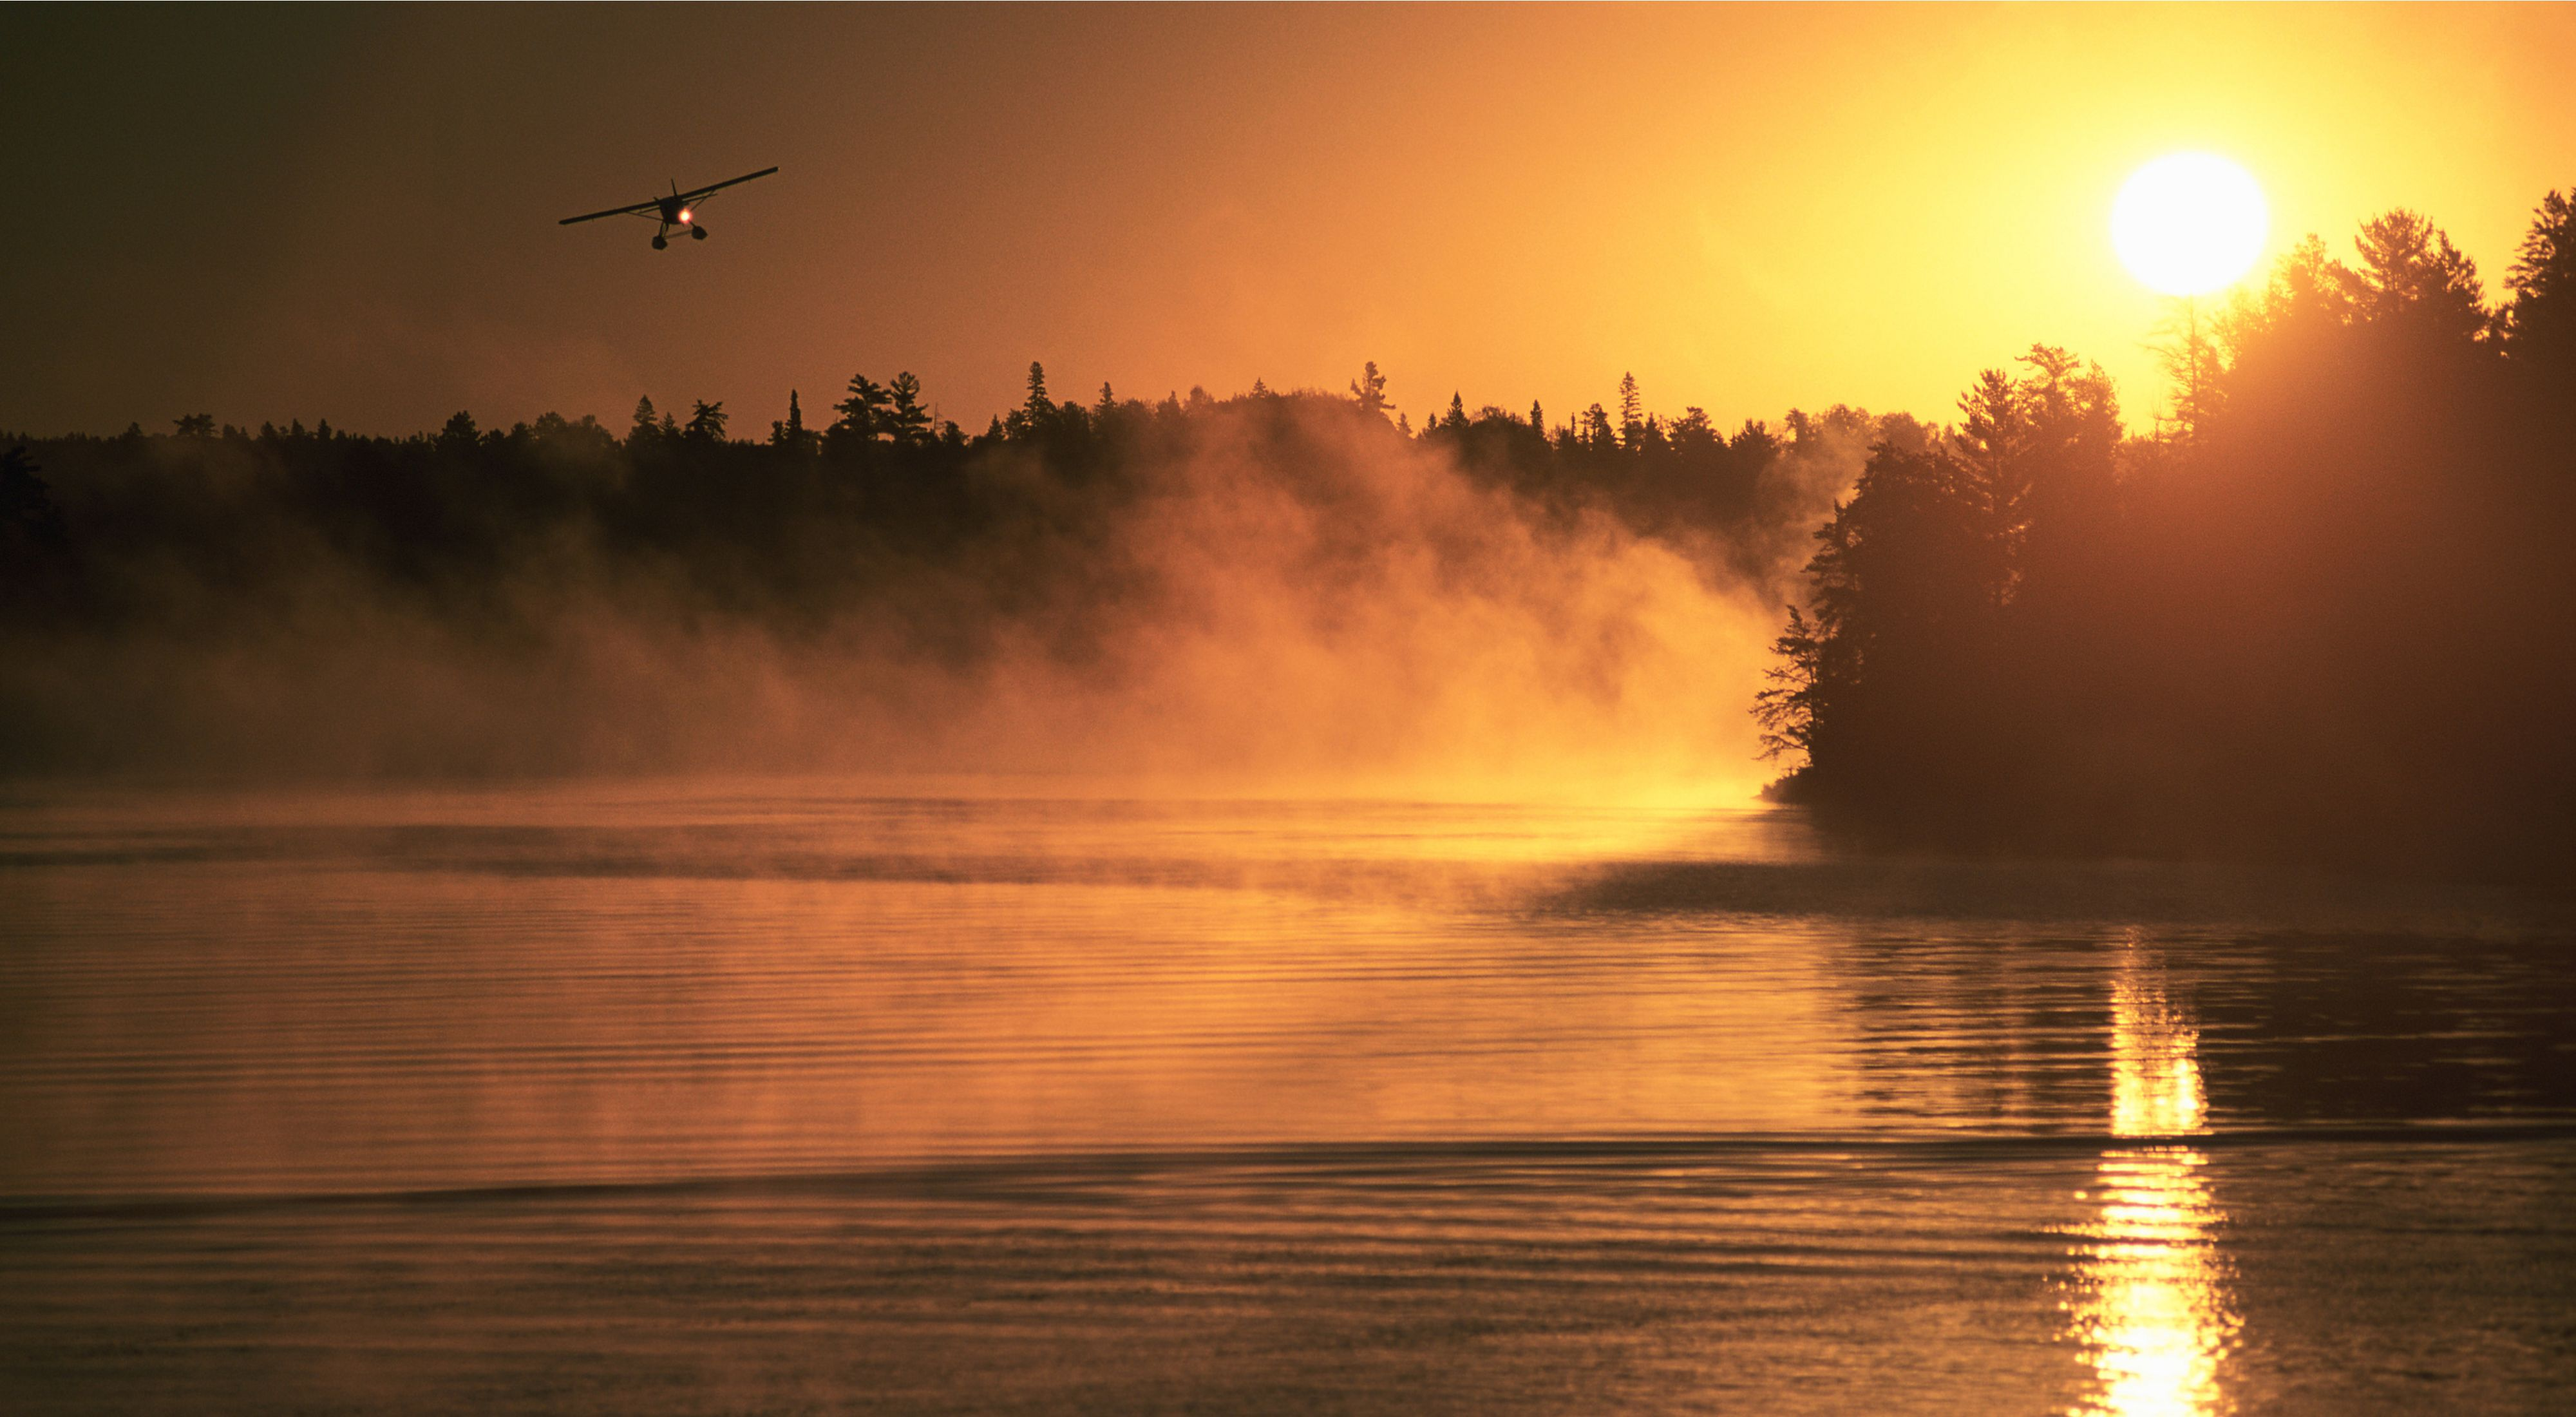 A float plane carrying fishermen departs at dawn from Nestor Falls on one of the many lakes in the Lakes of the Woods region of Ontario Canada.